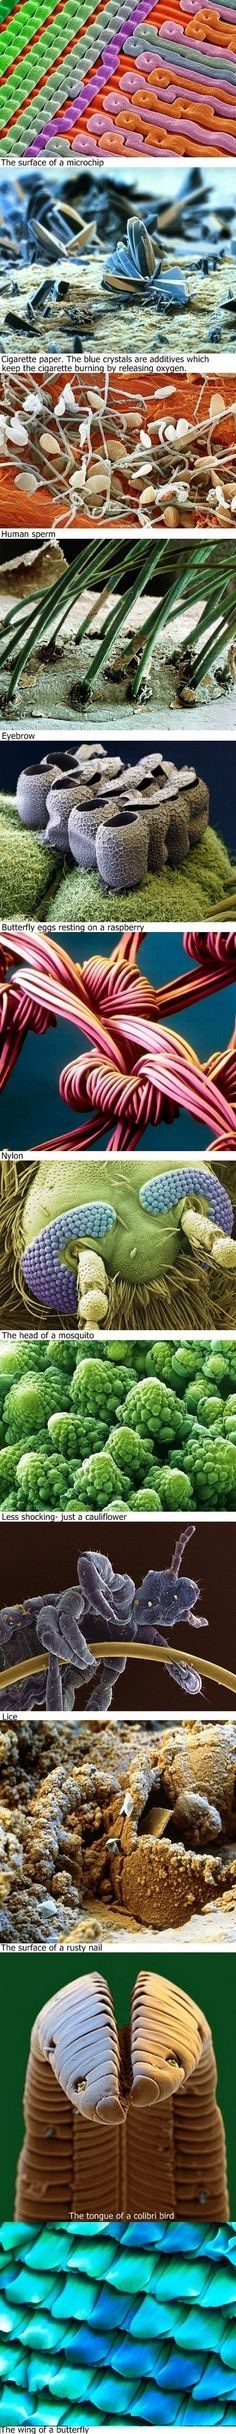 Random items enlarged with an electron microscope.